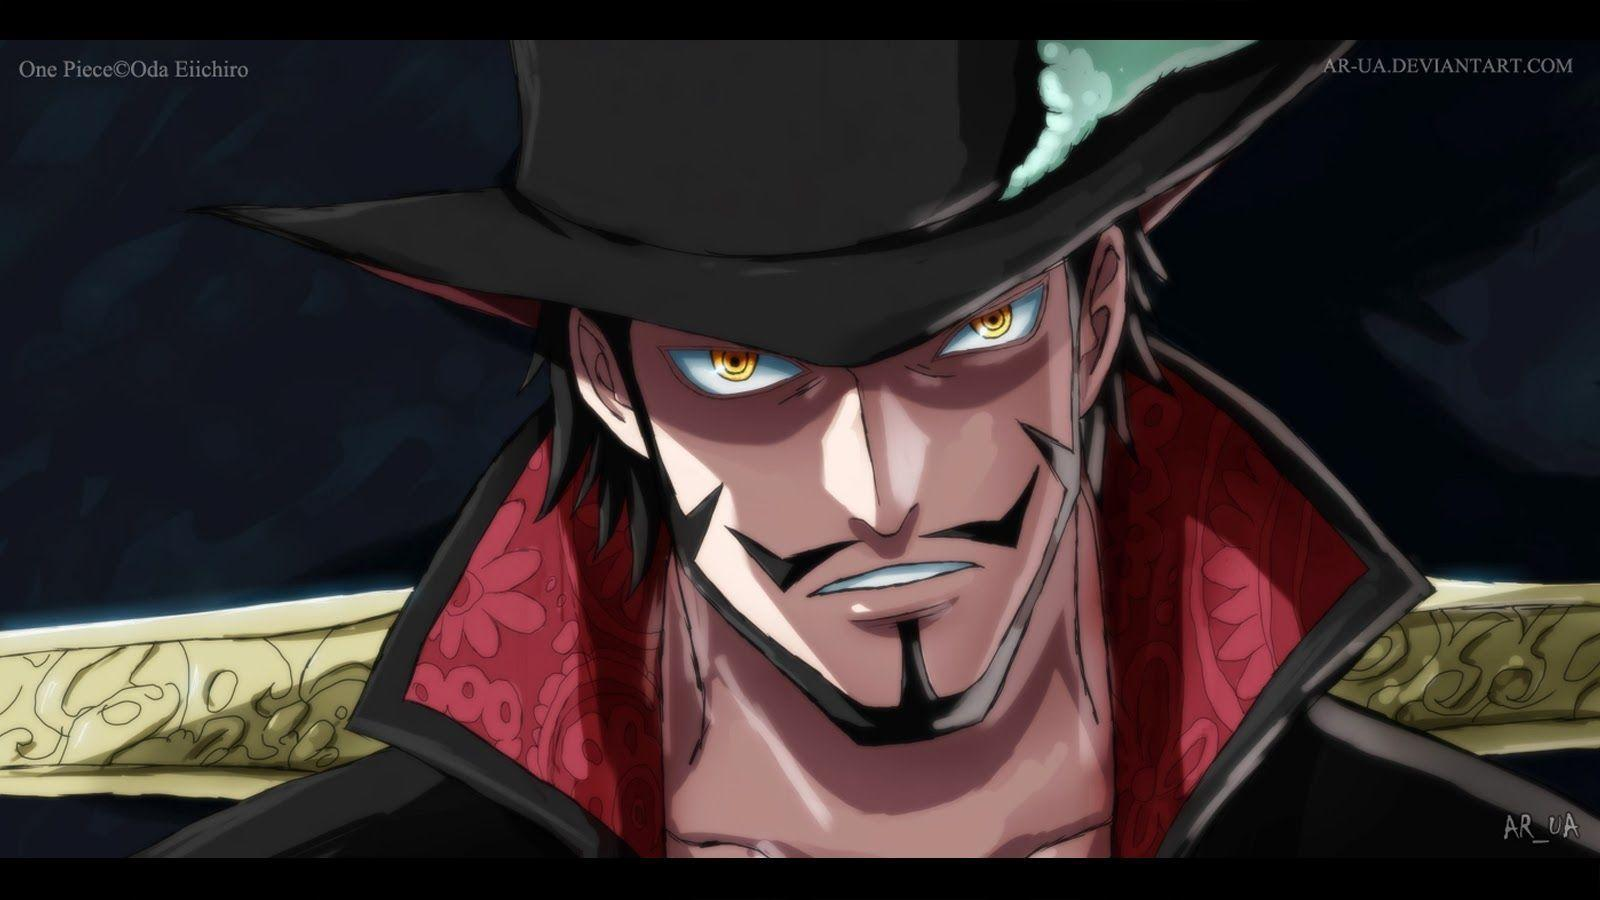 One Piece Mihawk Wallpapers Hd 17+